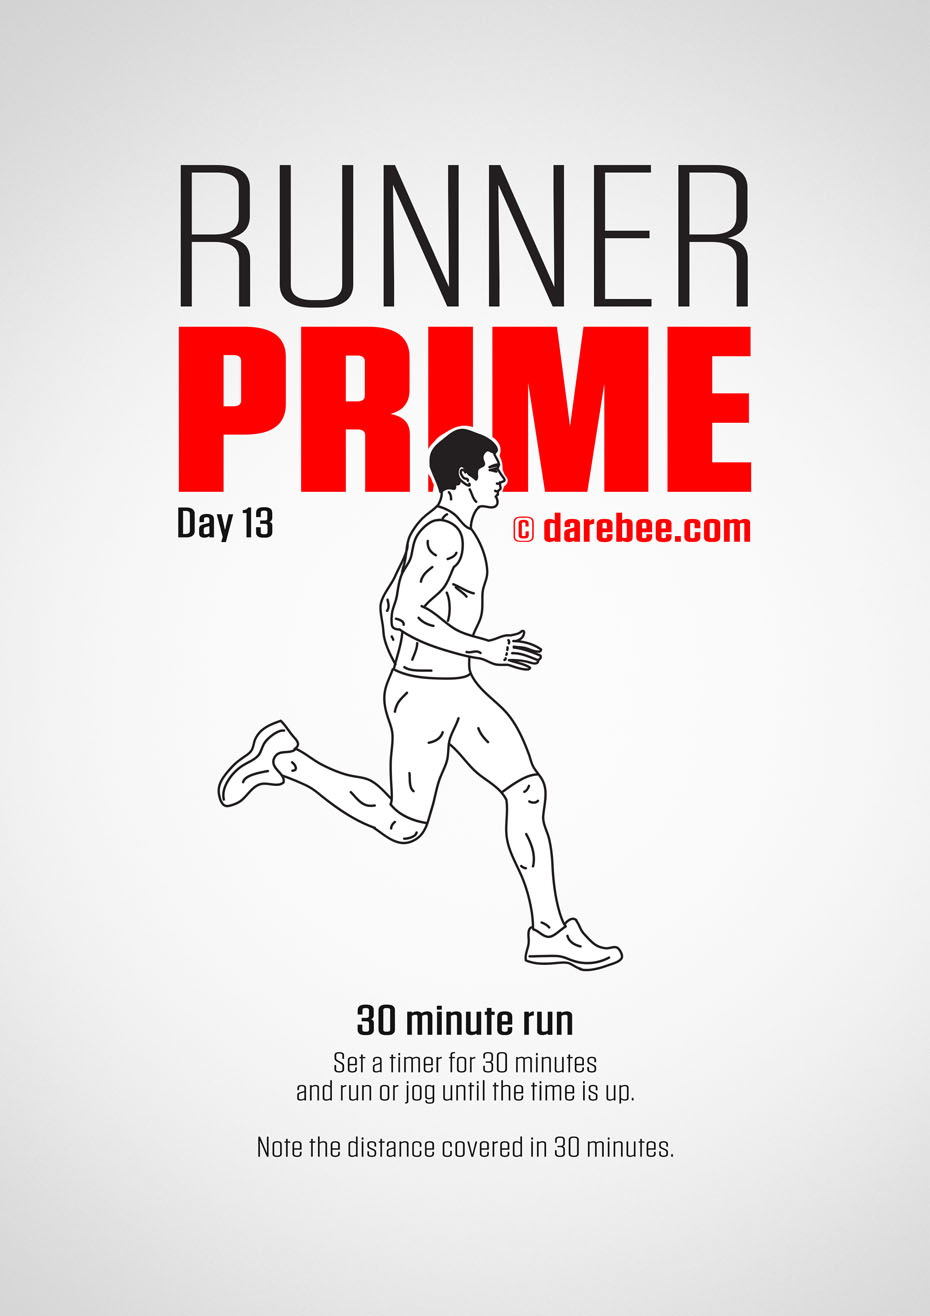 Runner Prime - Running Program by DAREBEE